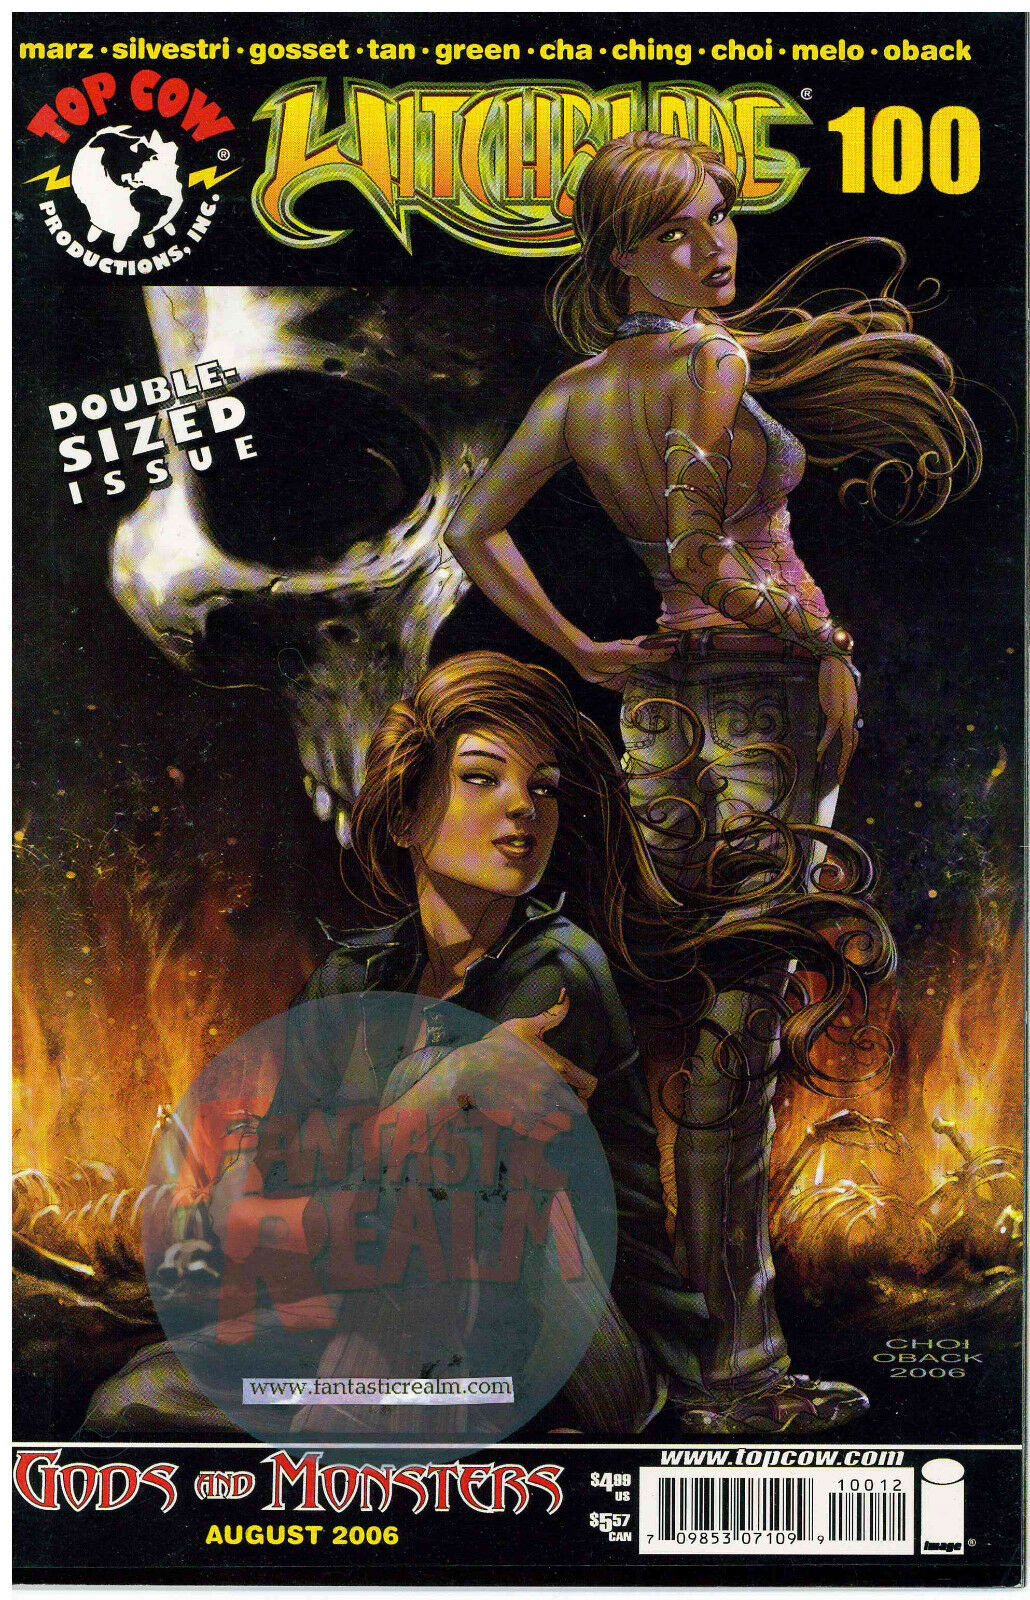 Witchblade #100 Choi Cover (2006) Image Comics